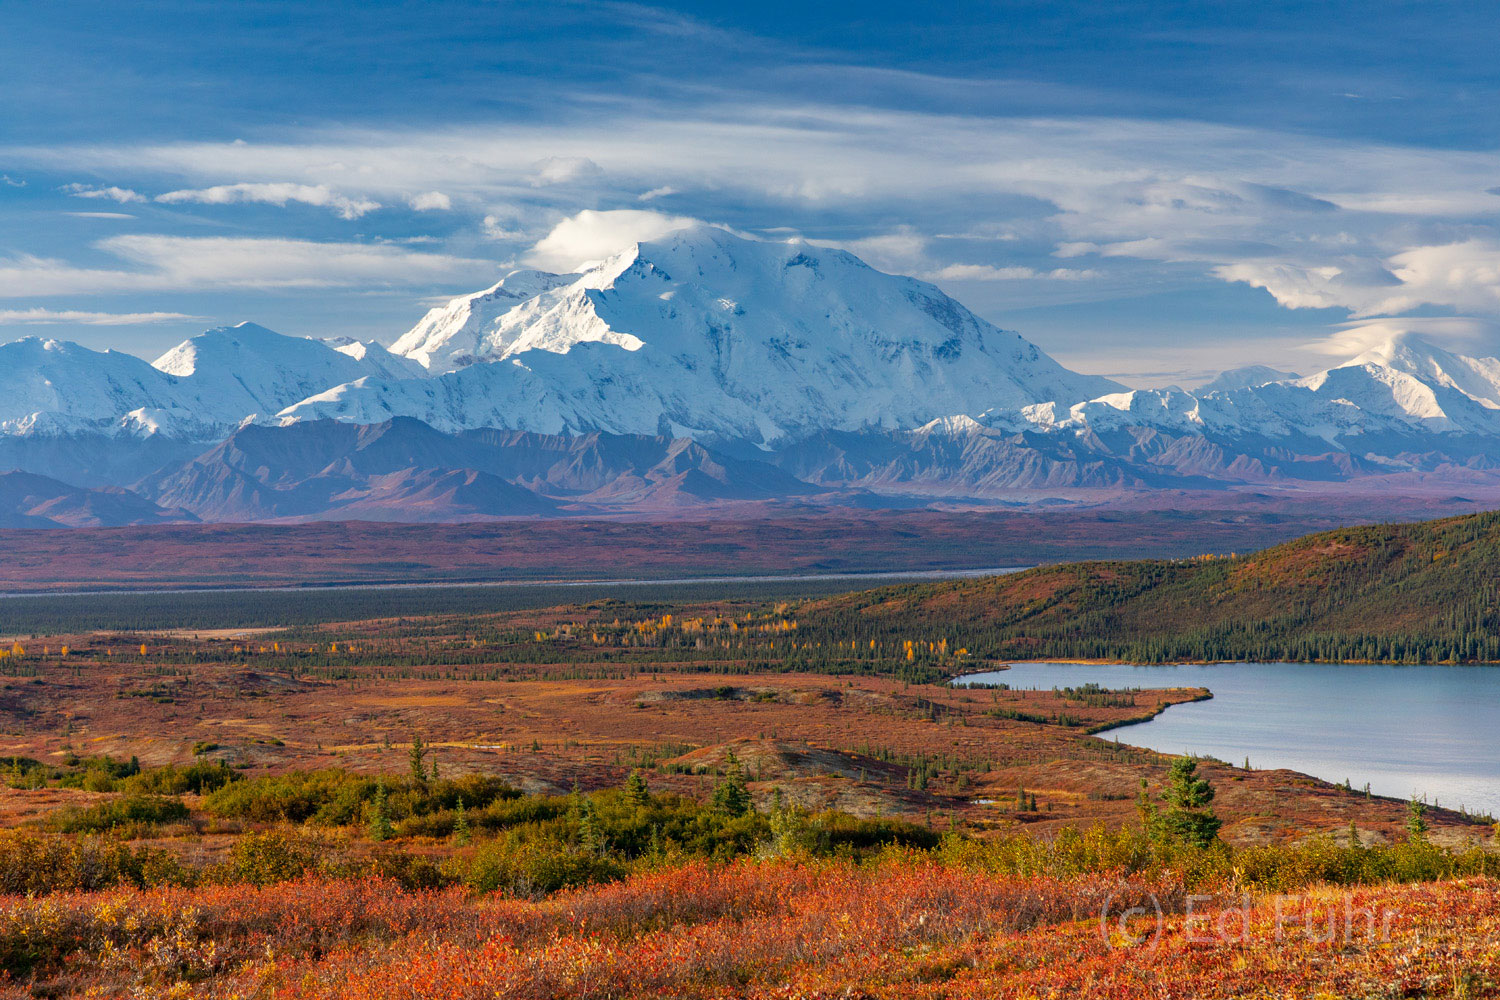 Termination Dust, as the first snow is called, coats Denali and the ridges below it, above Wonder Lake